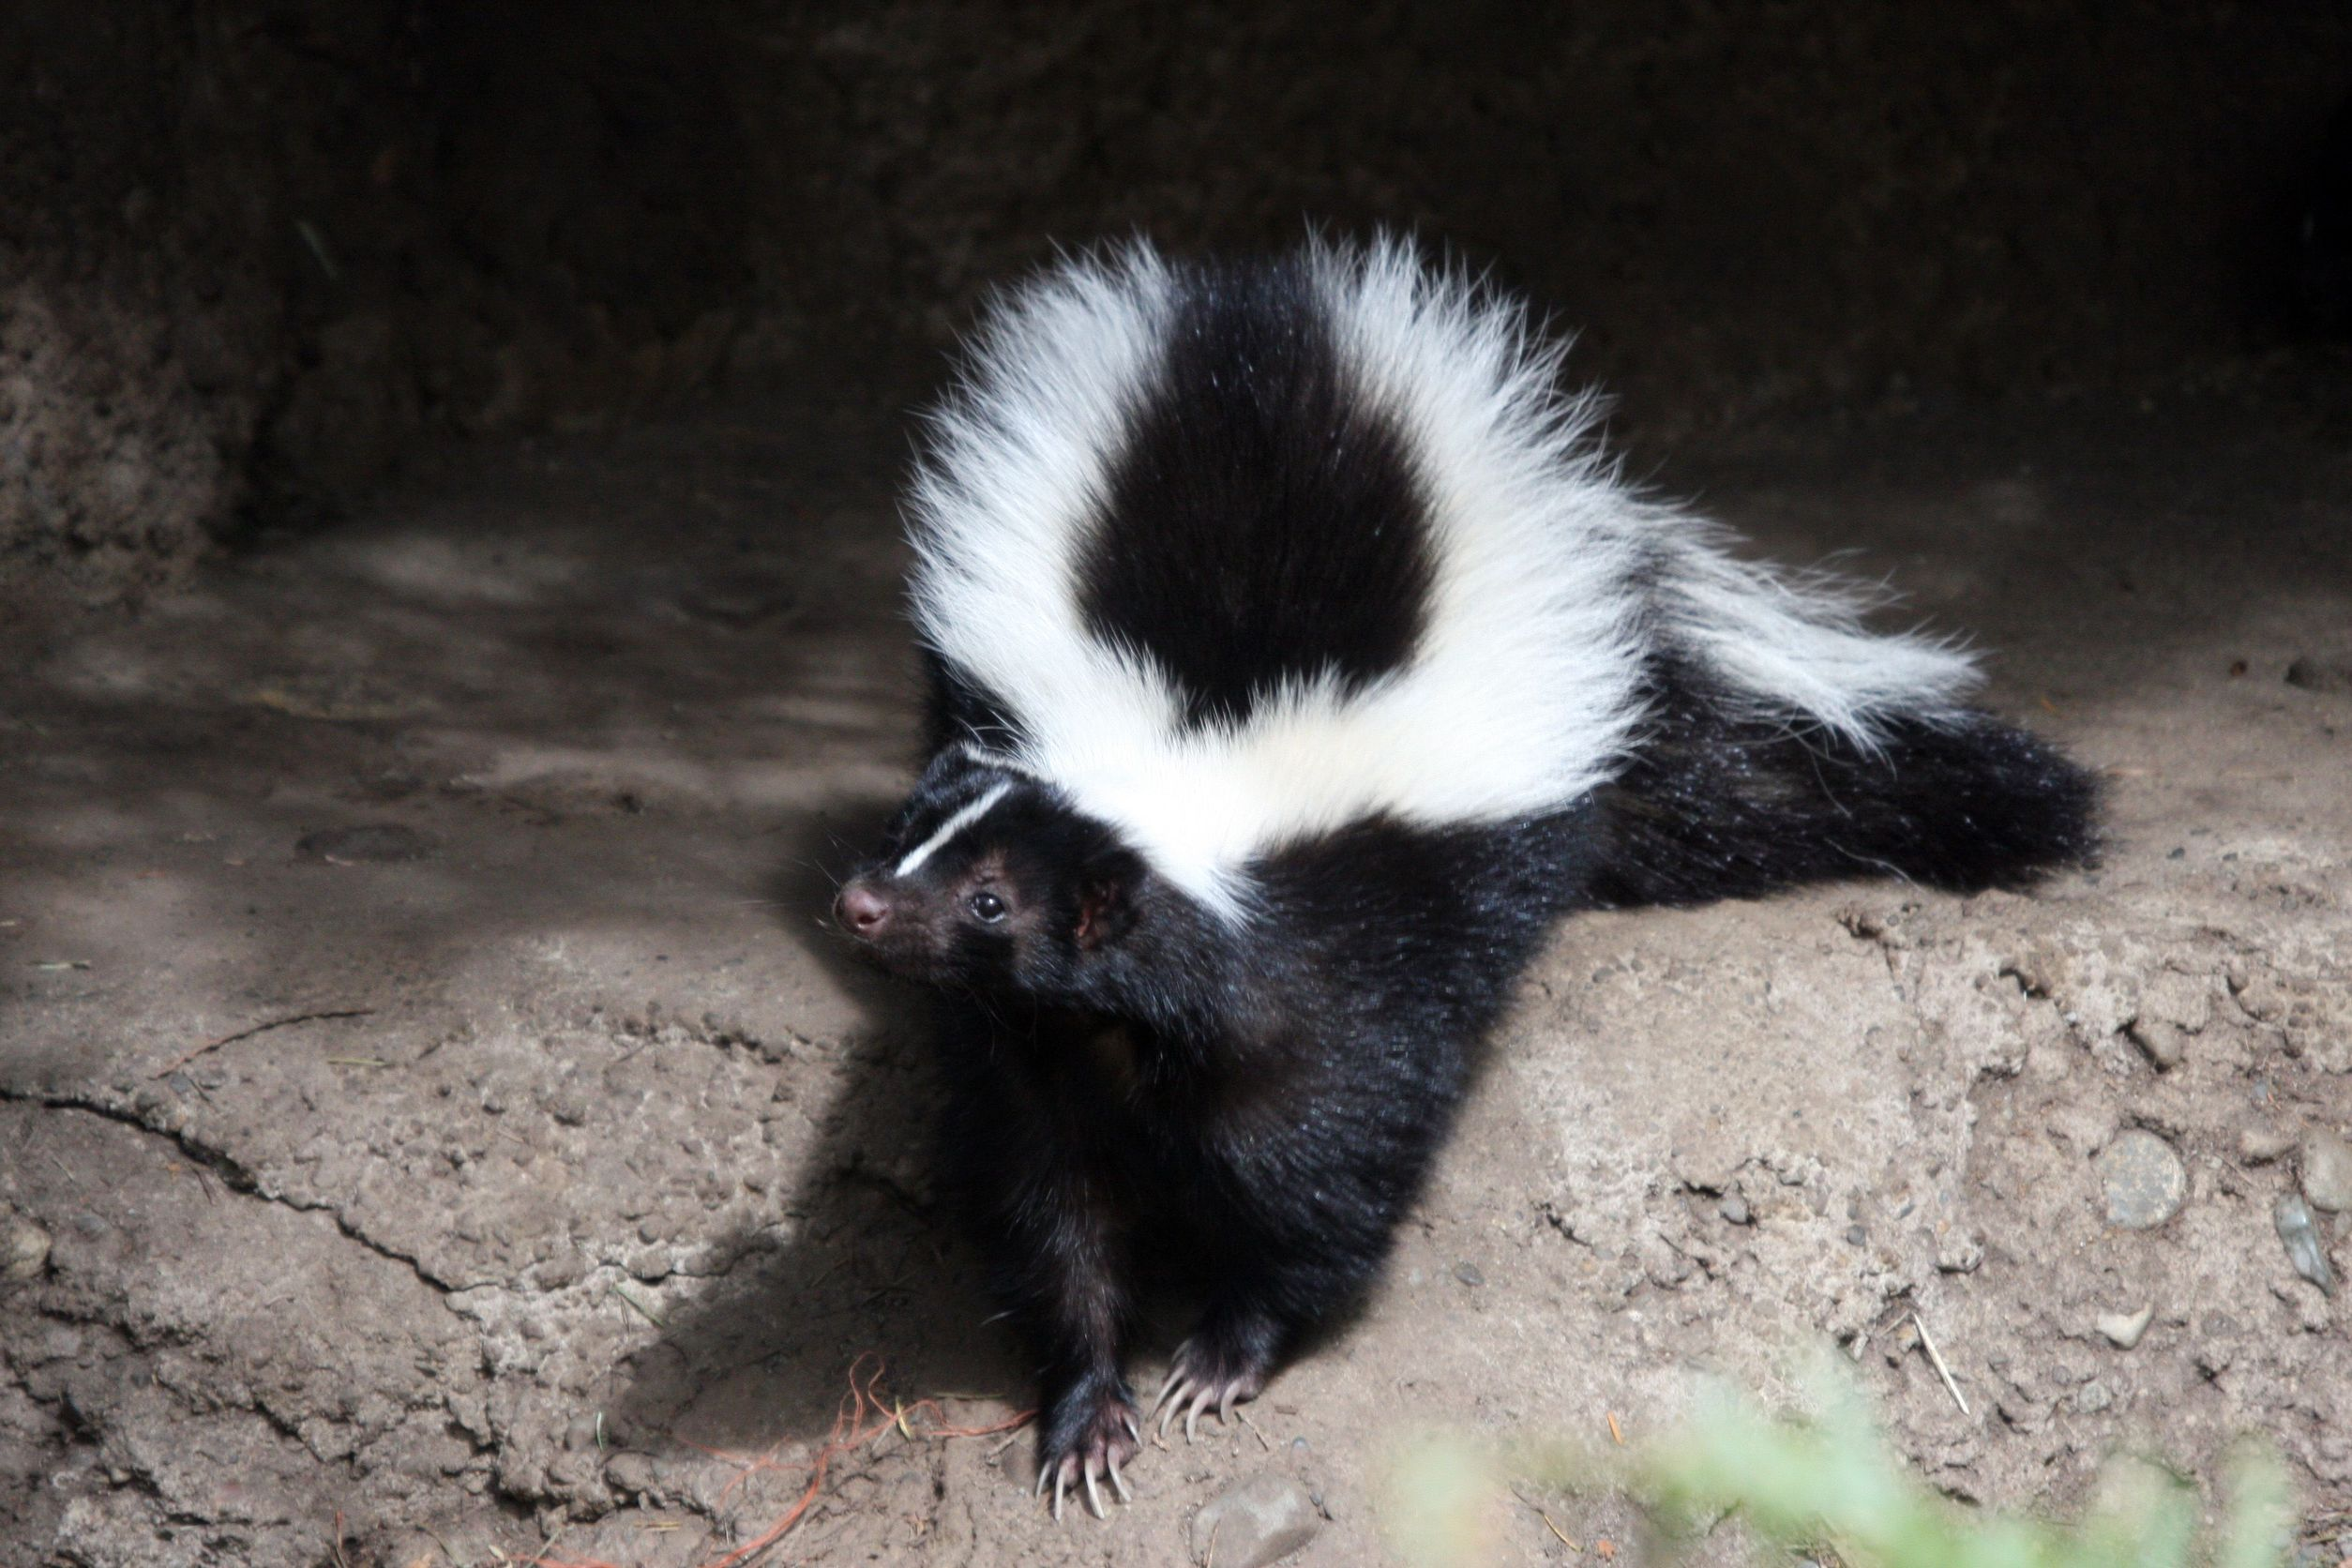 Common Problems Caused by Skunks - Skunk.com